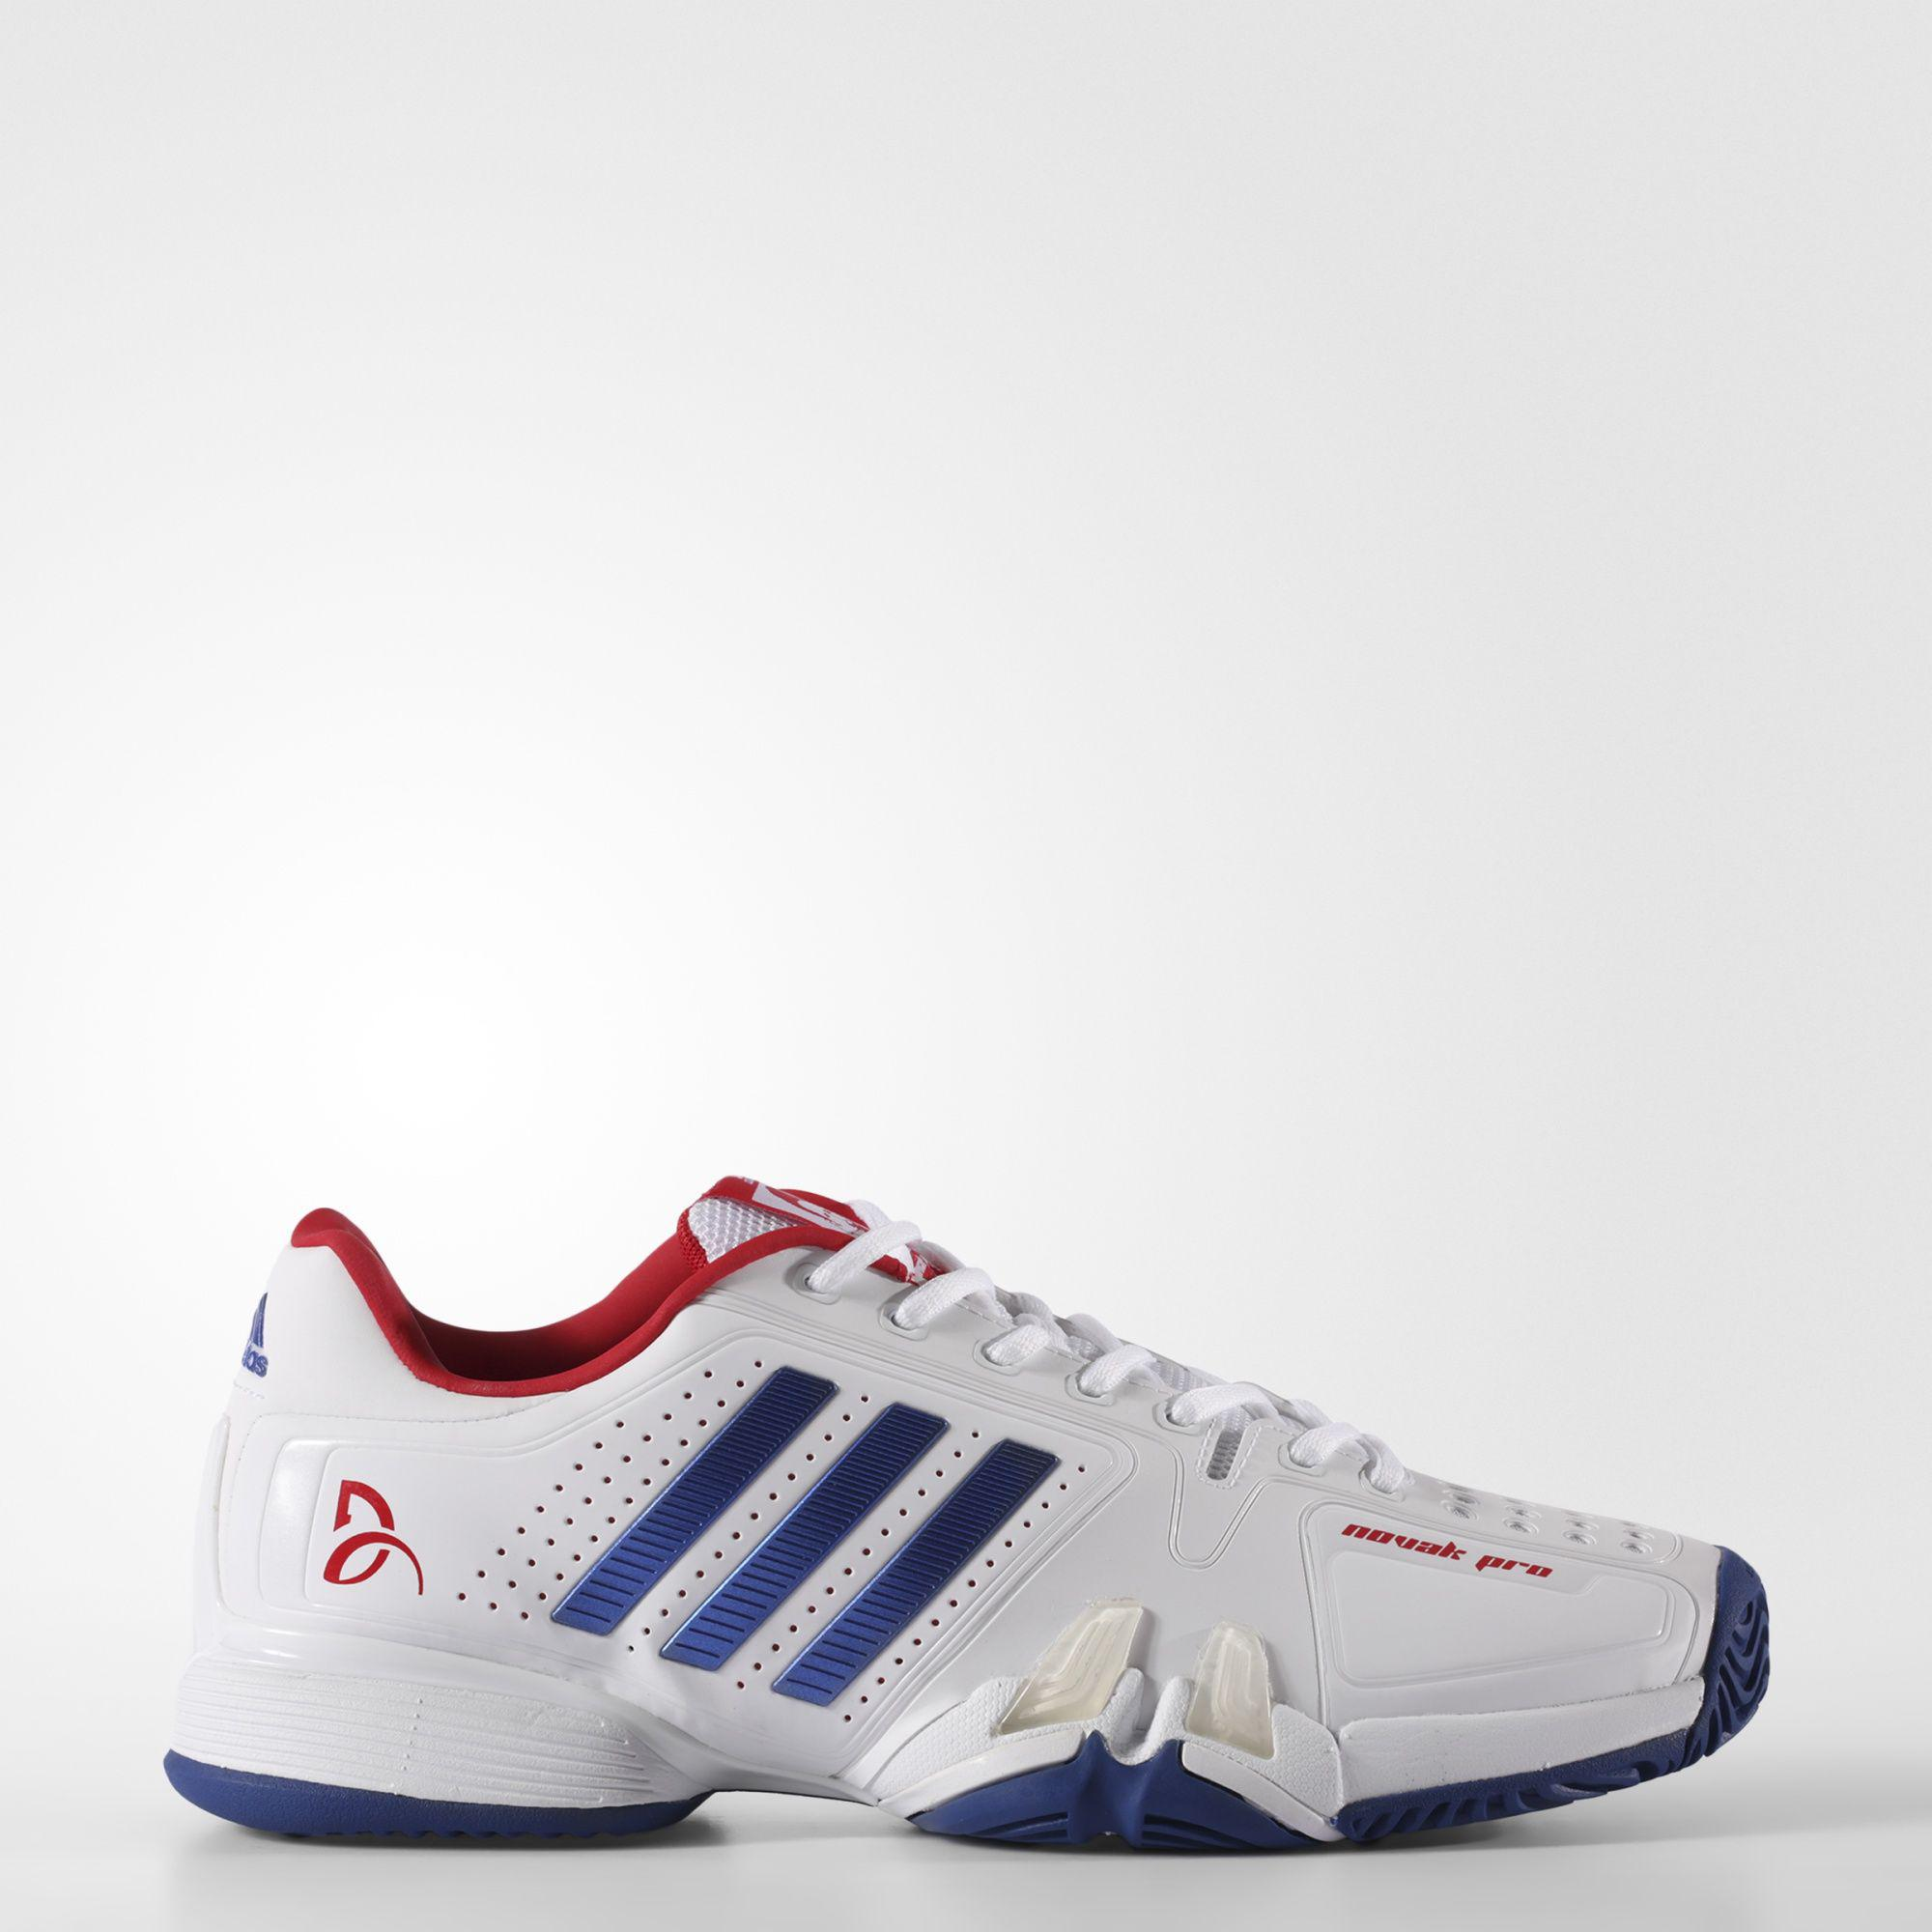 Adidas Mens Novak Pro Barricade Tennis Shoes WhiteBlue